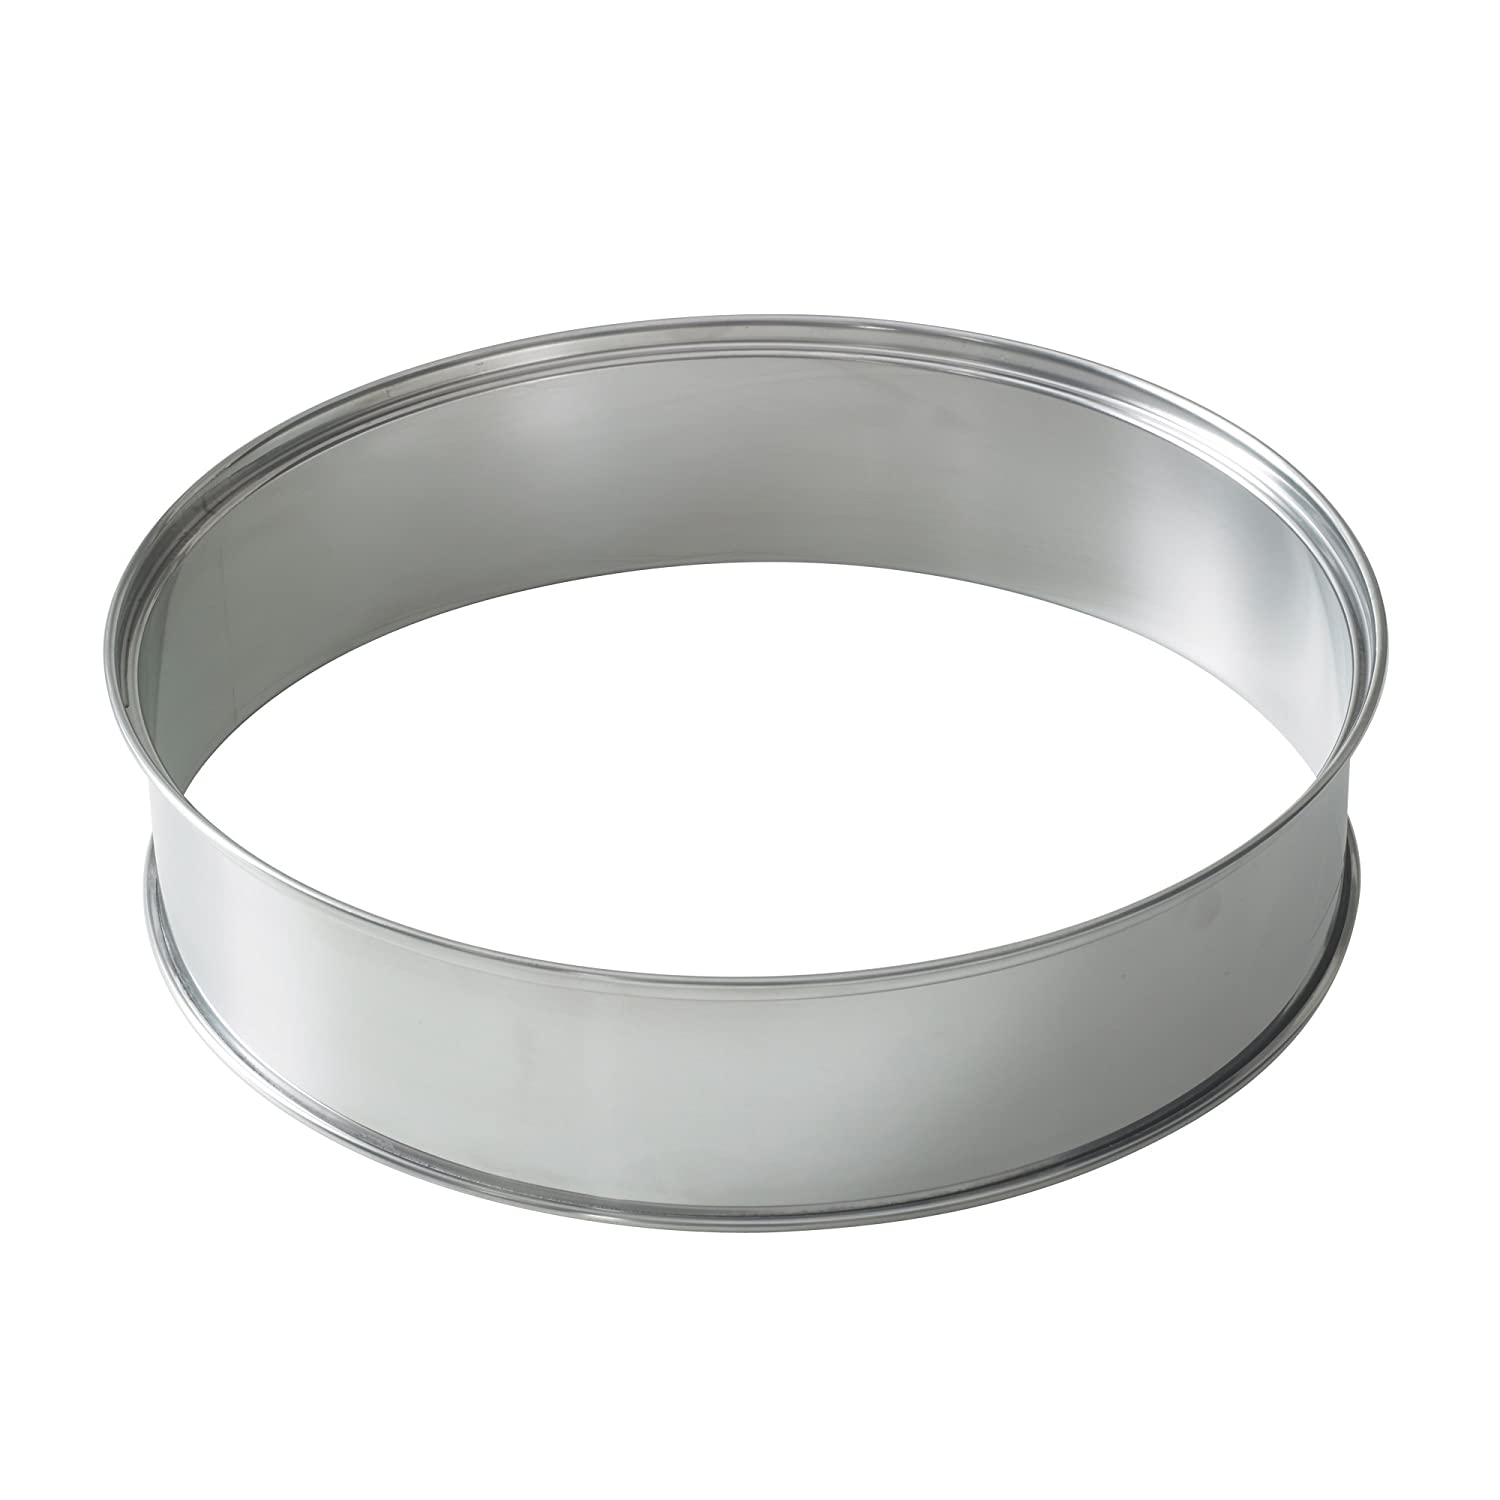 Halowave Oven Accessory: Extension Ring For Up to 5.7 L Extra Cooking Space JML